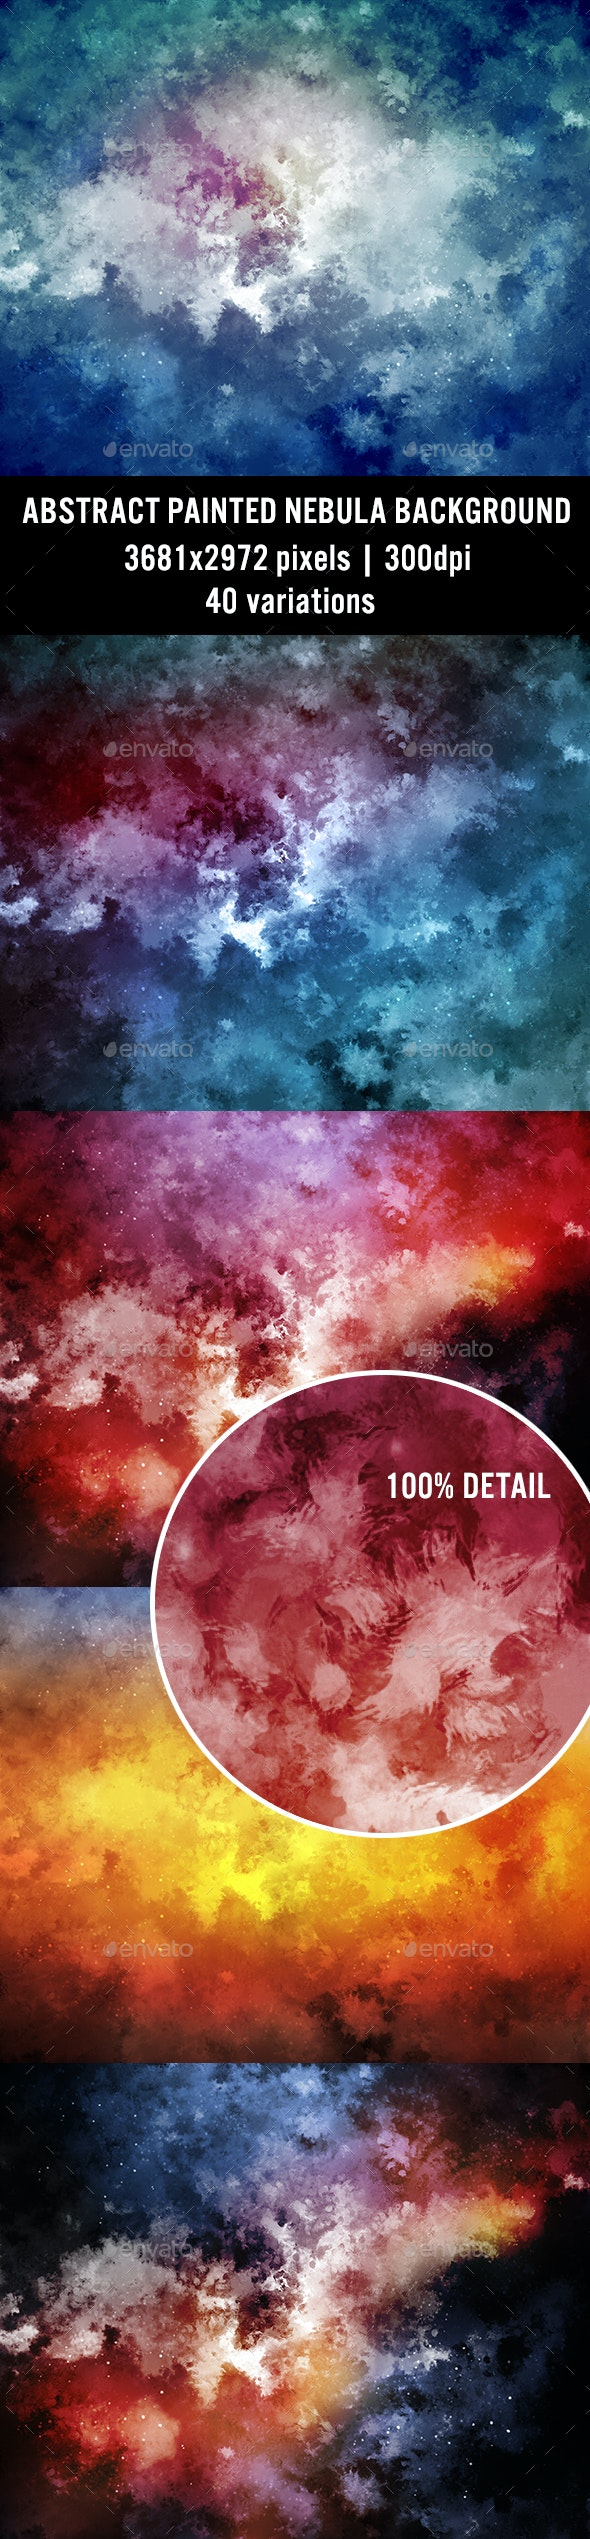 Abstract Painted Nebula Background - Abstract Backgrounds